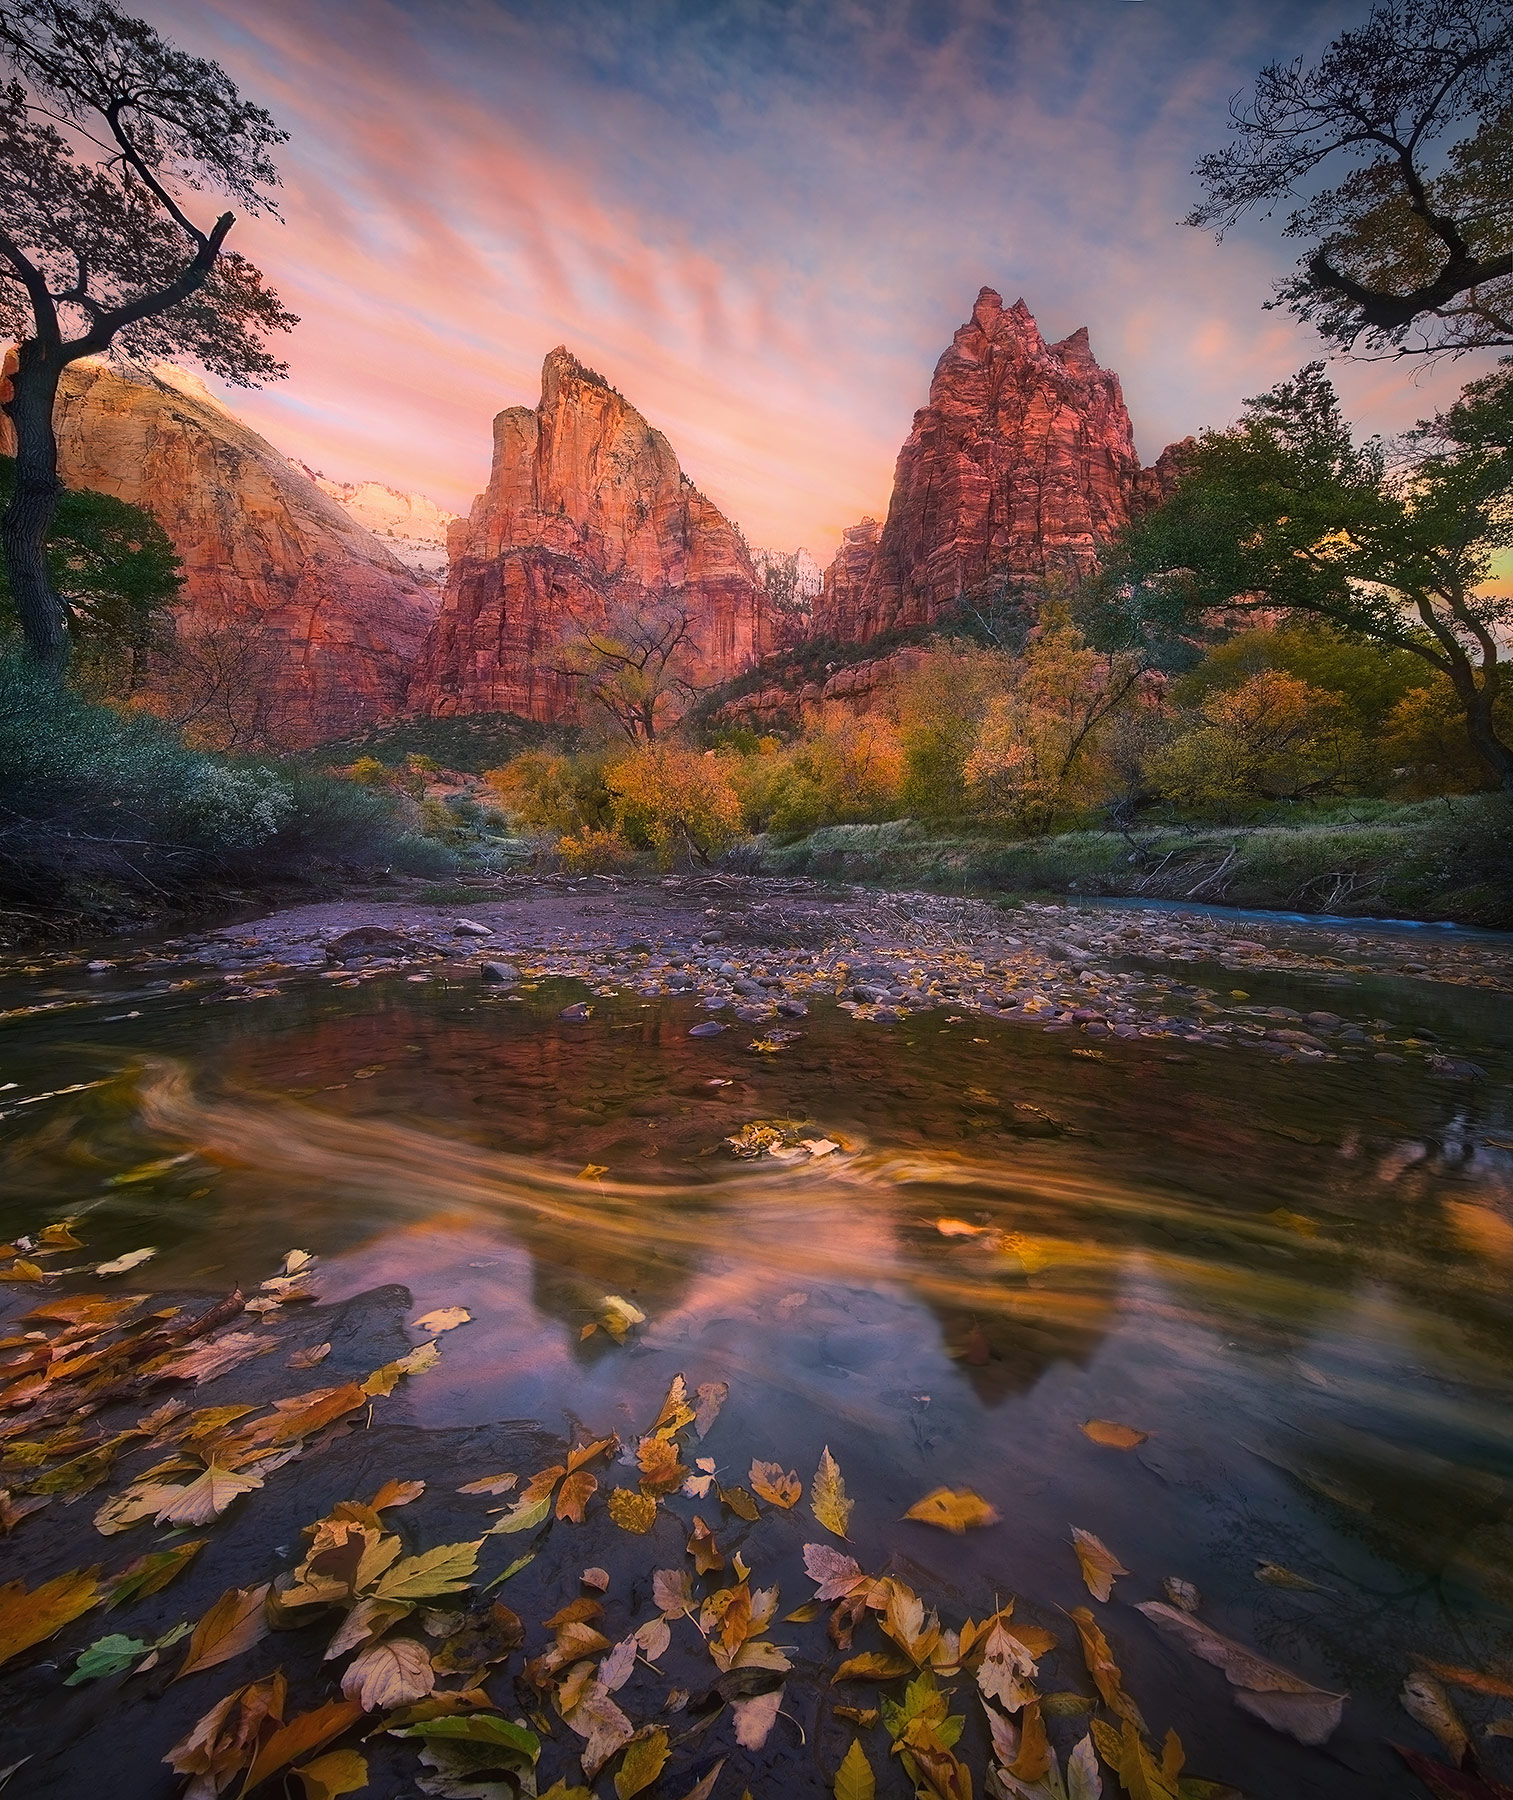 A rich blend of Autumn colors and sunrise glow in Zion National Park, Utah. Leaves streak by across the water below.